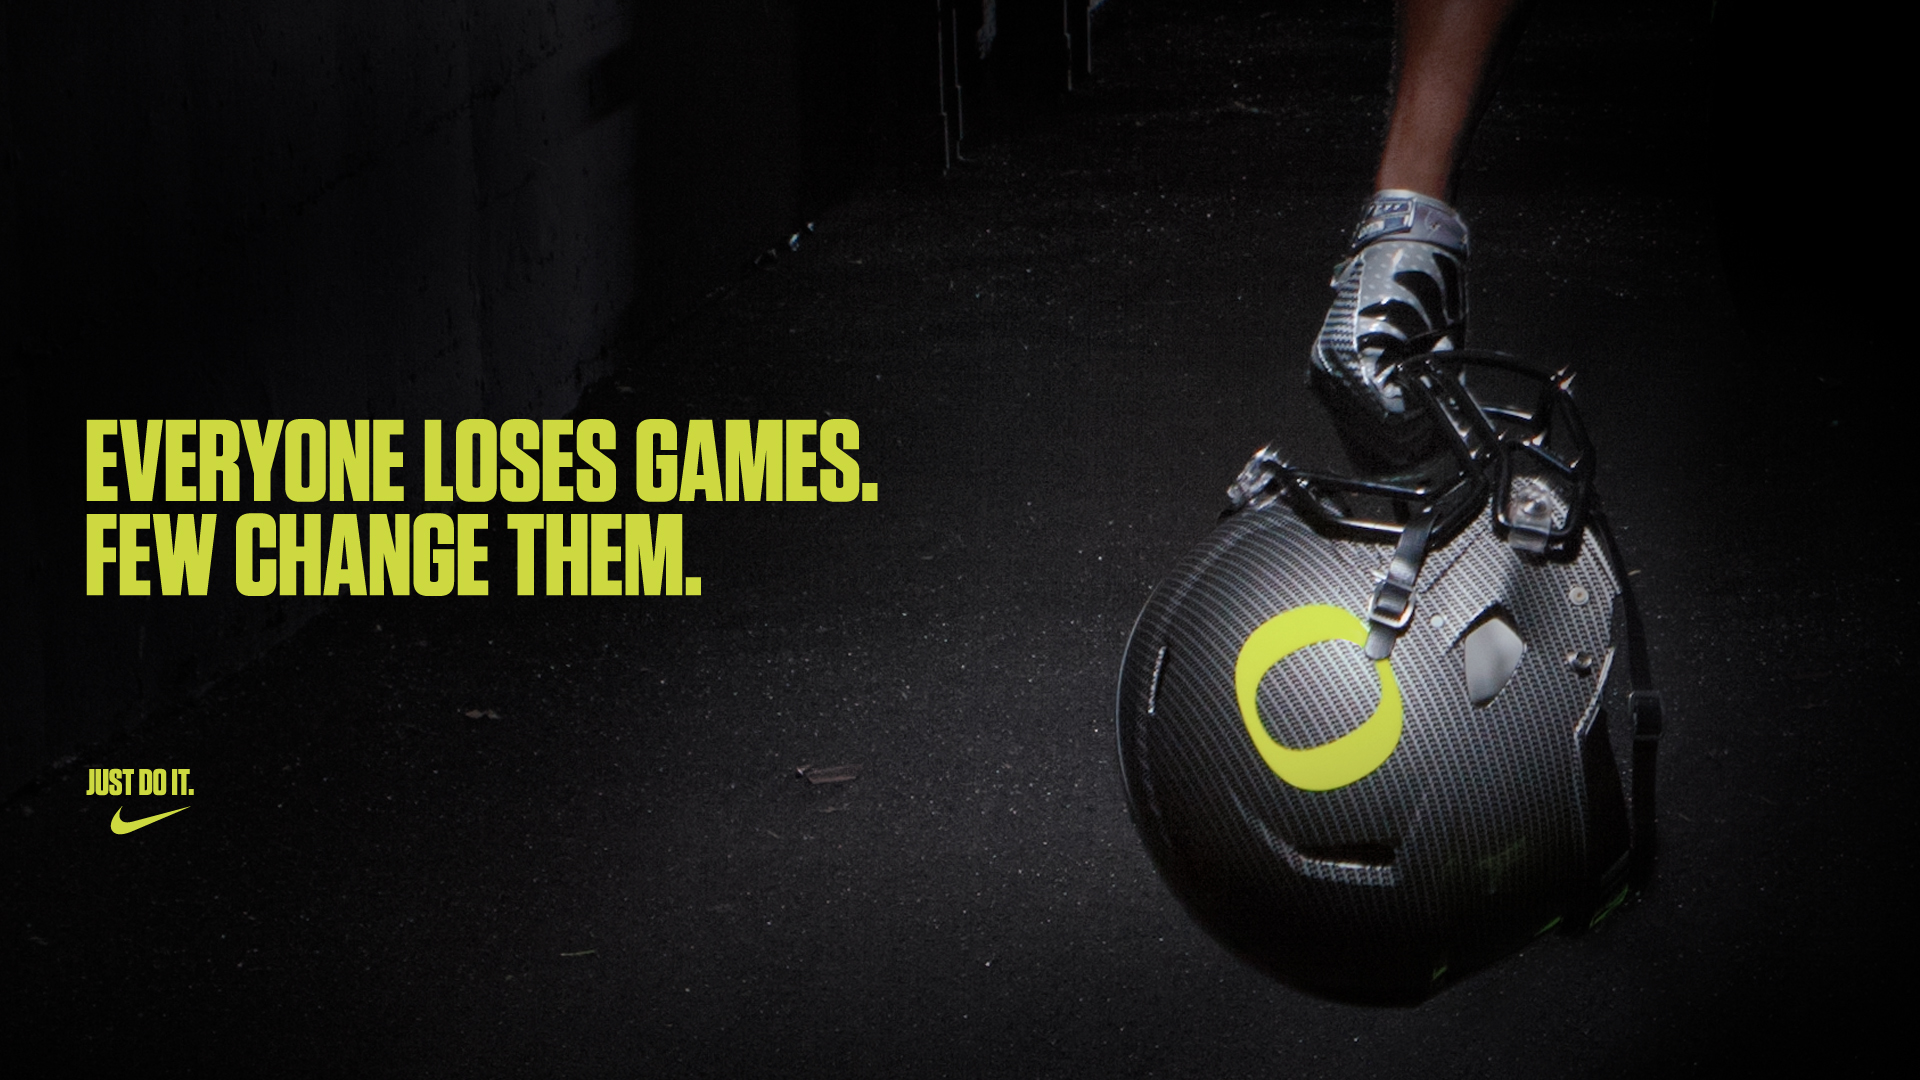 Nike football is everything wallpaper - photo#28